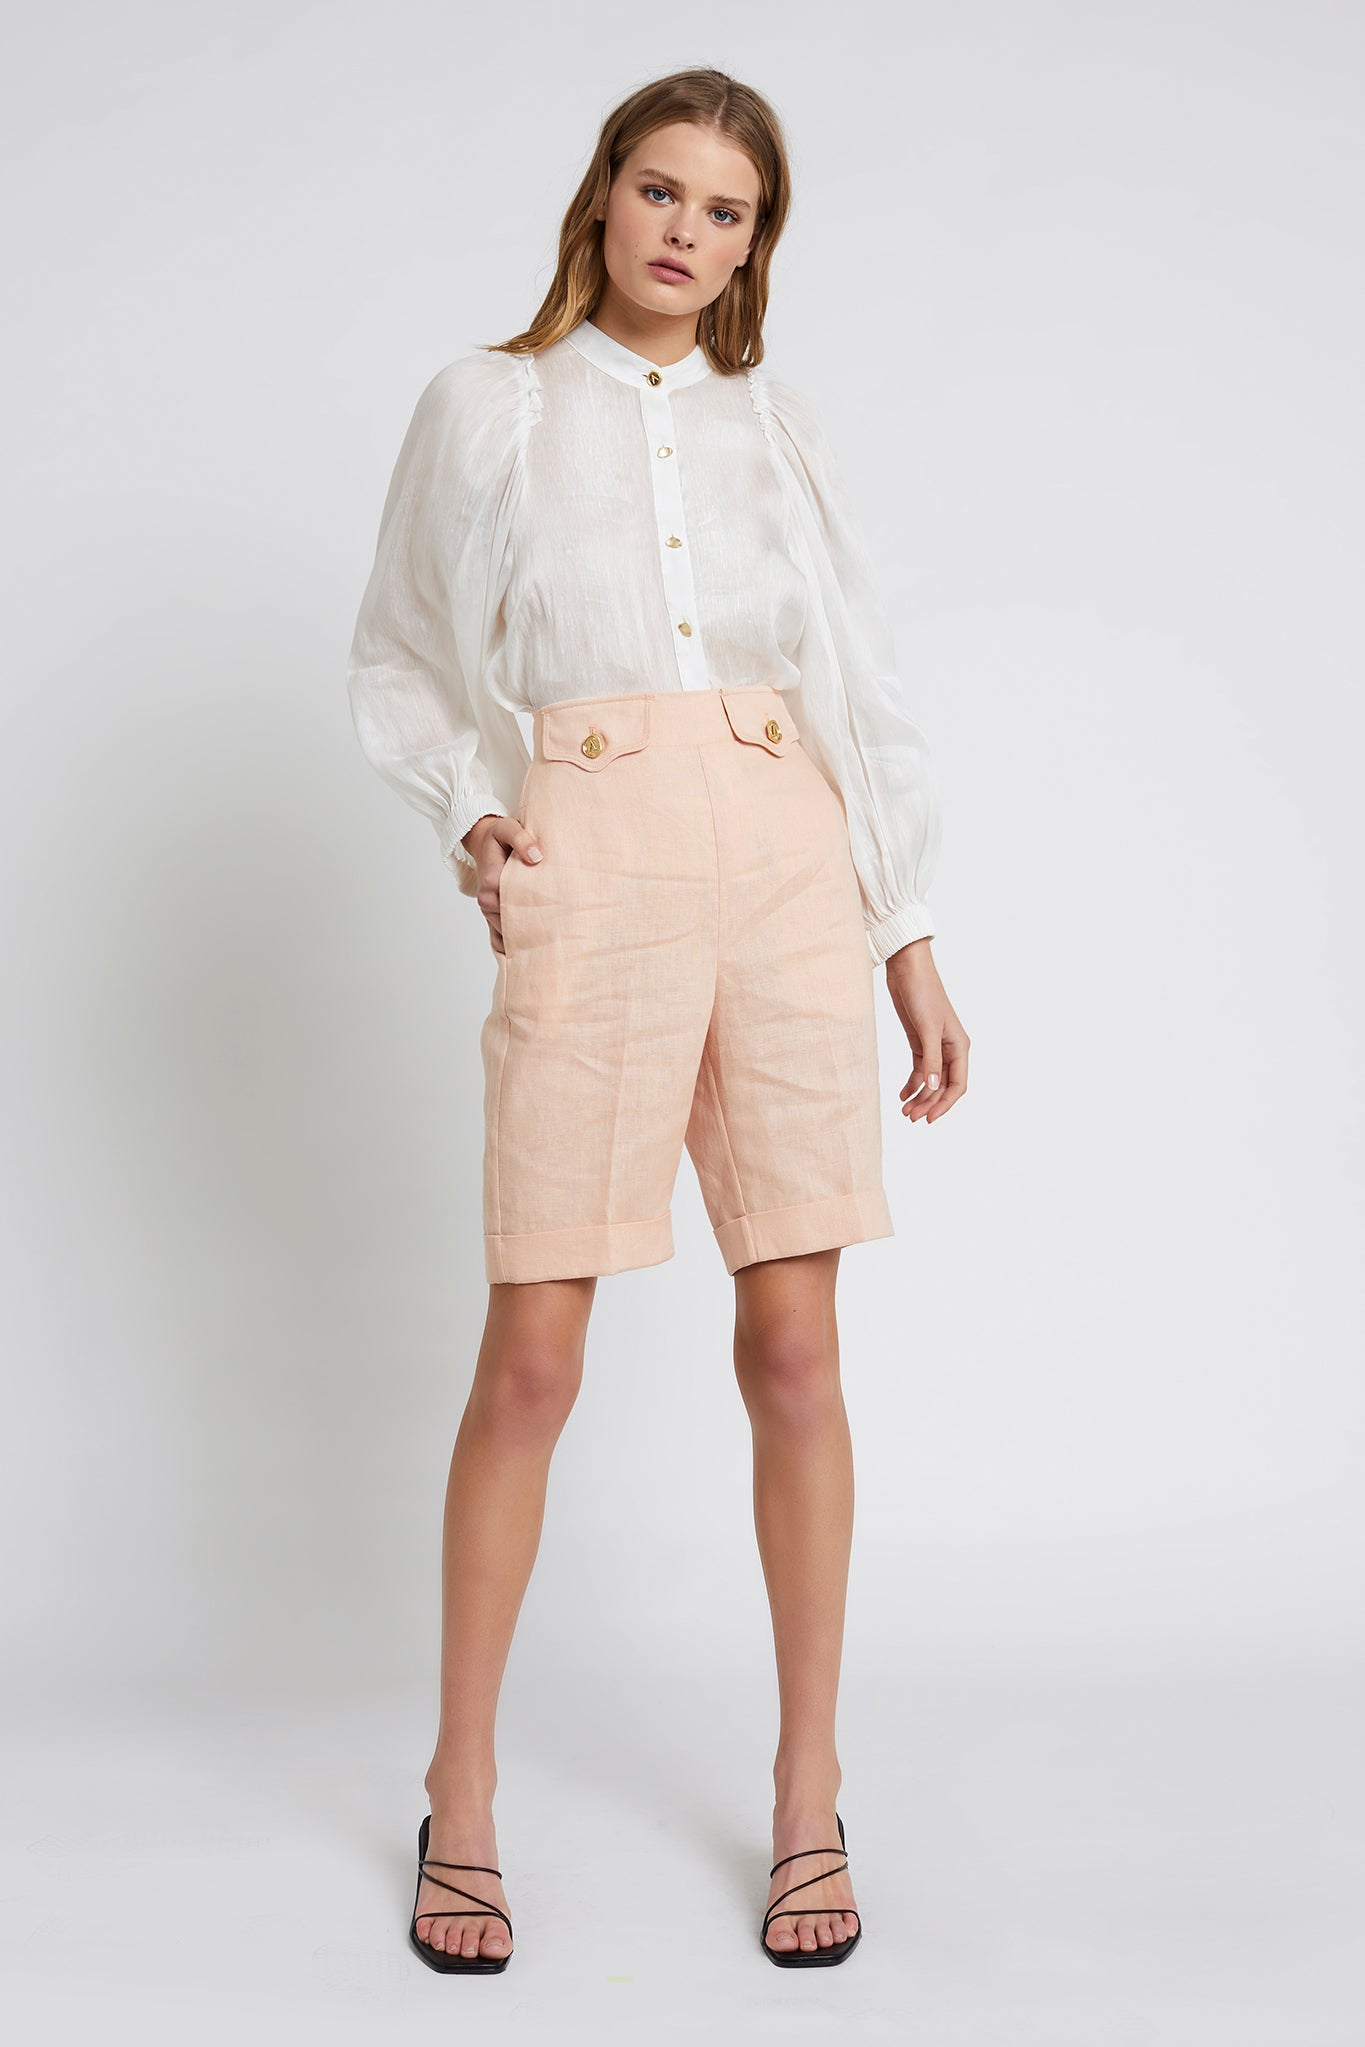 Alby Bermuda Short Outfit View